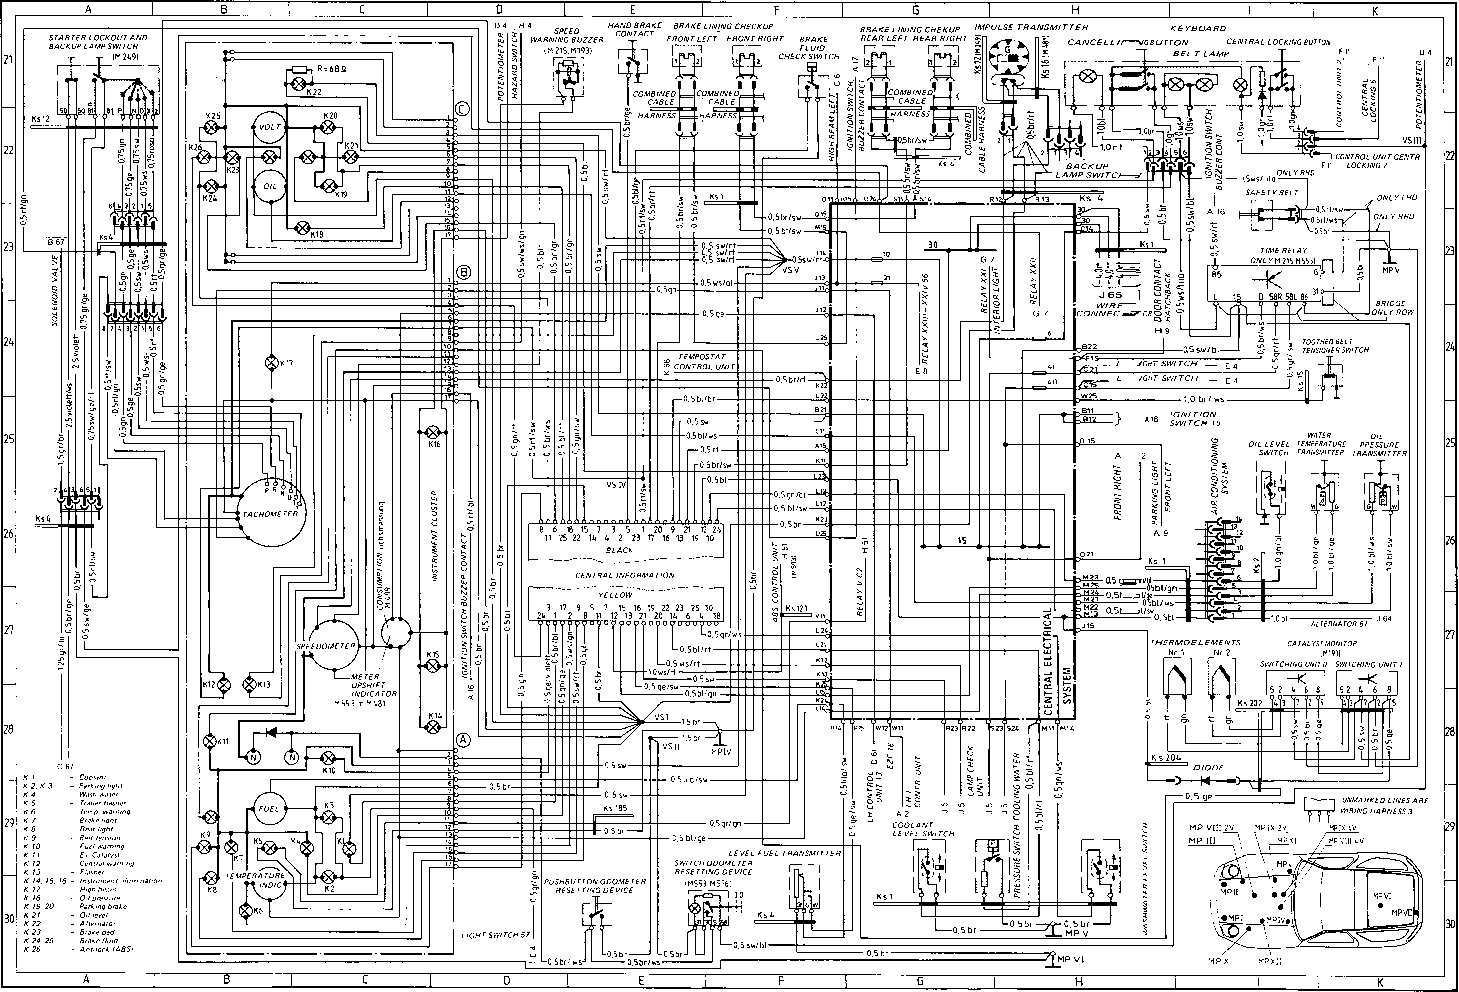 Porsche Wiring Diagram - Automotive Wiring Diagram •